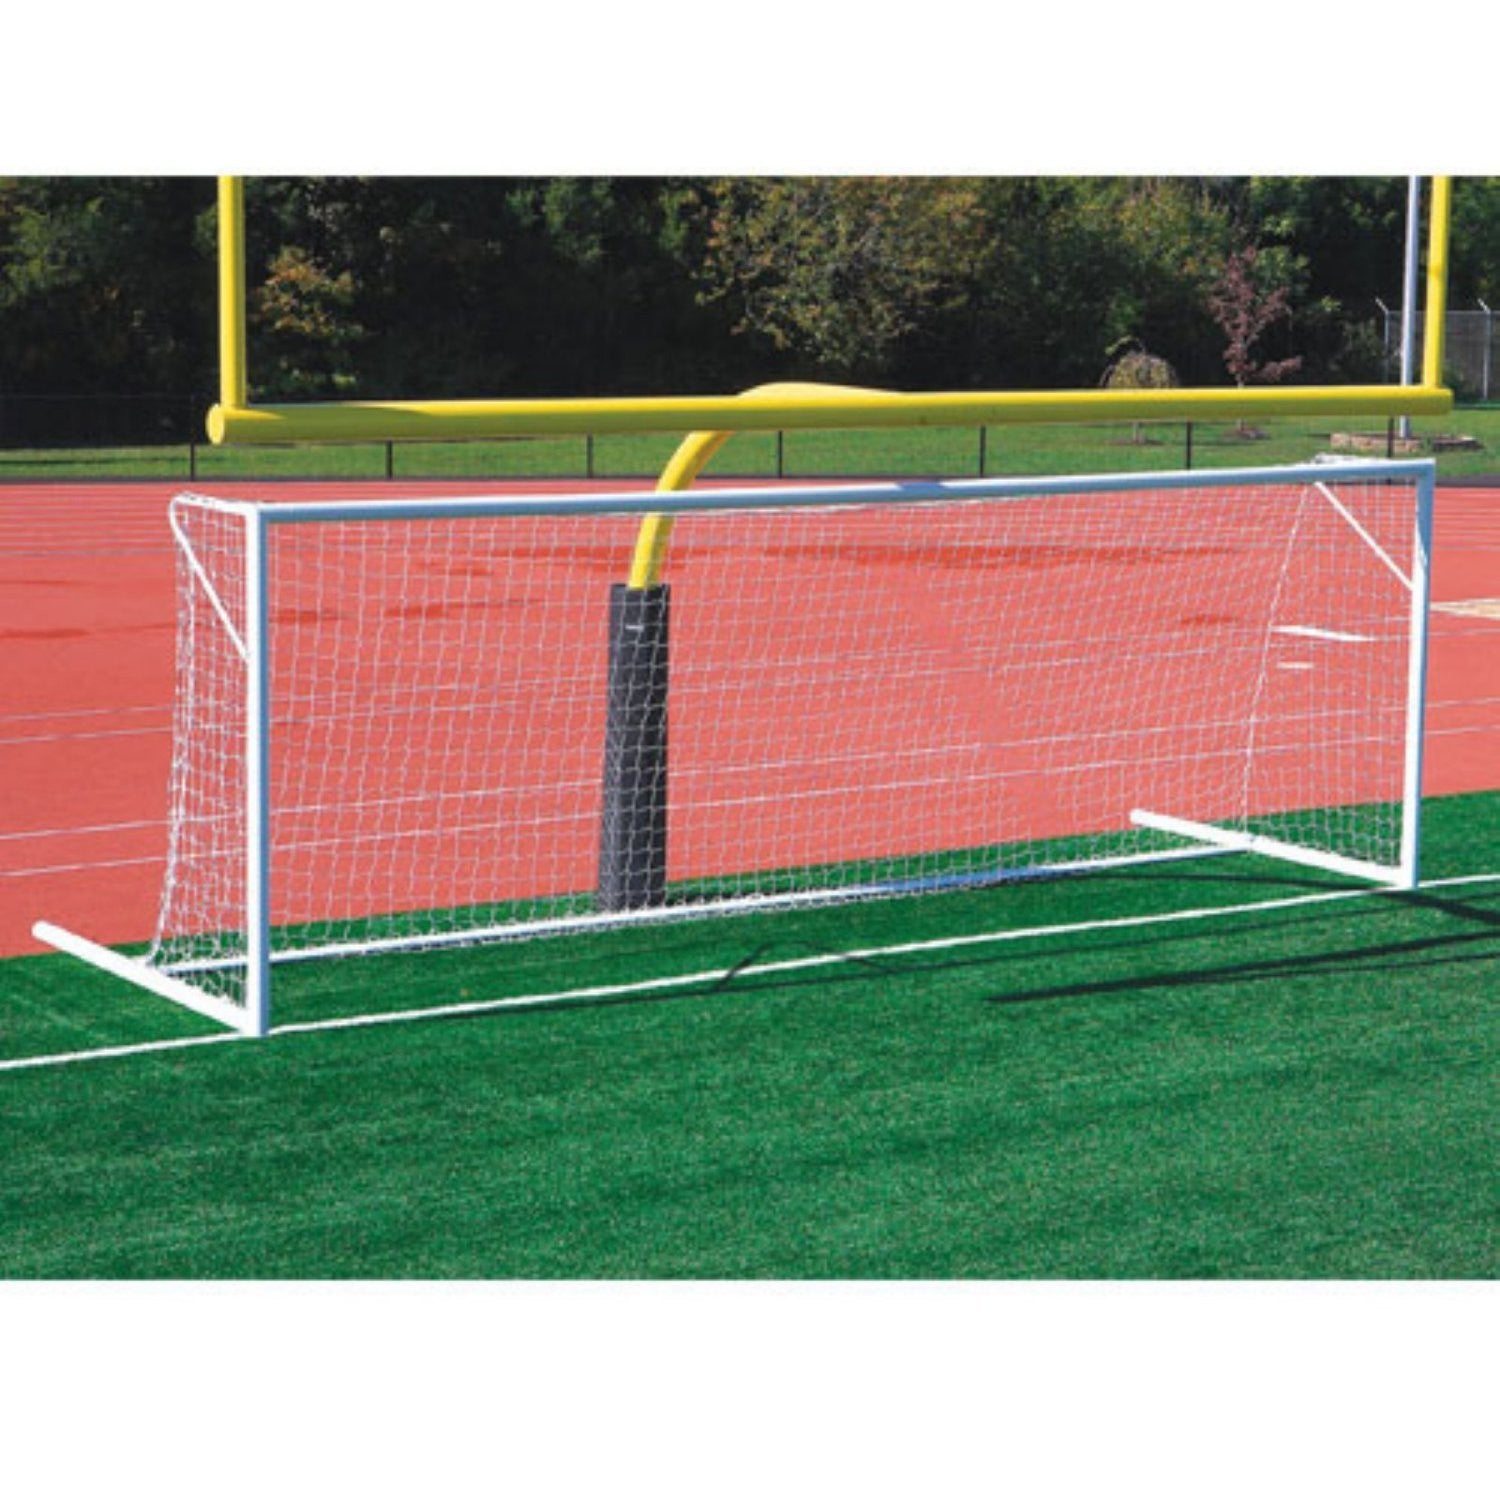 Kwik Goal FUSION 120 Soccer Goal with Wheels 8x24x3x8